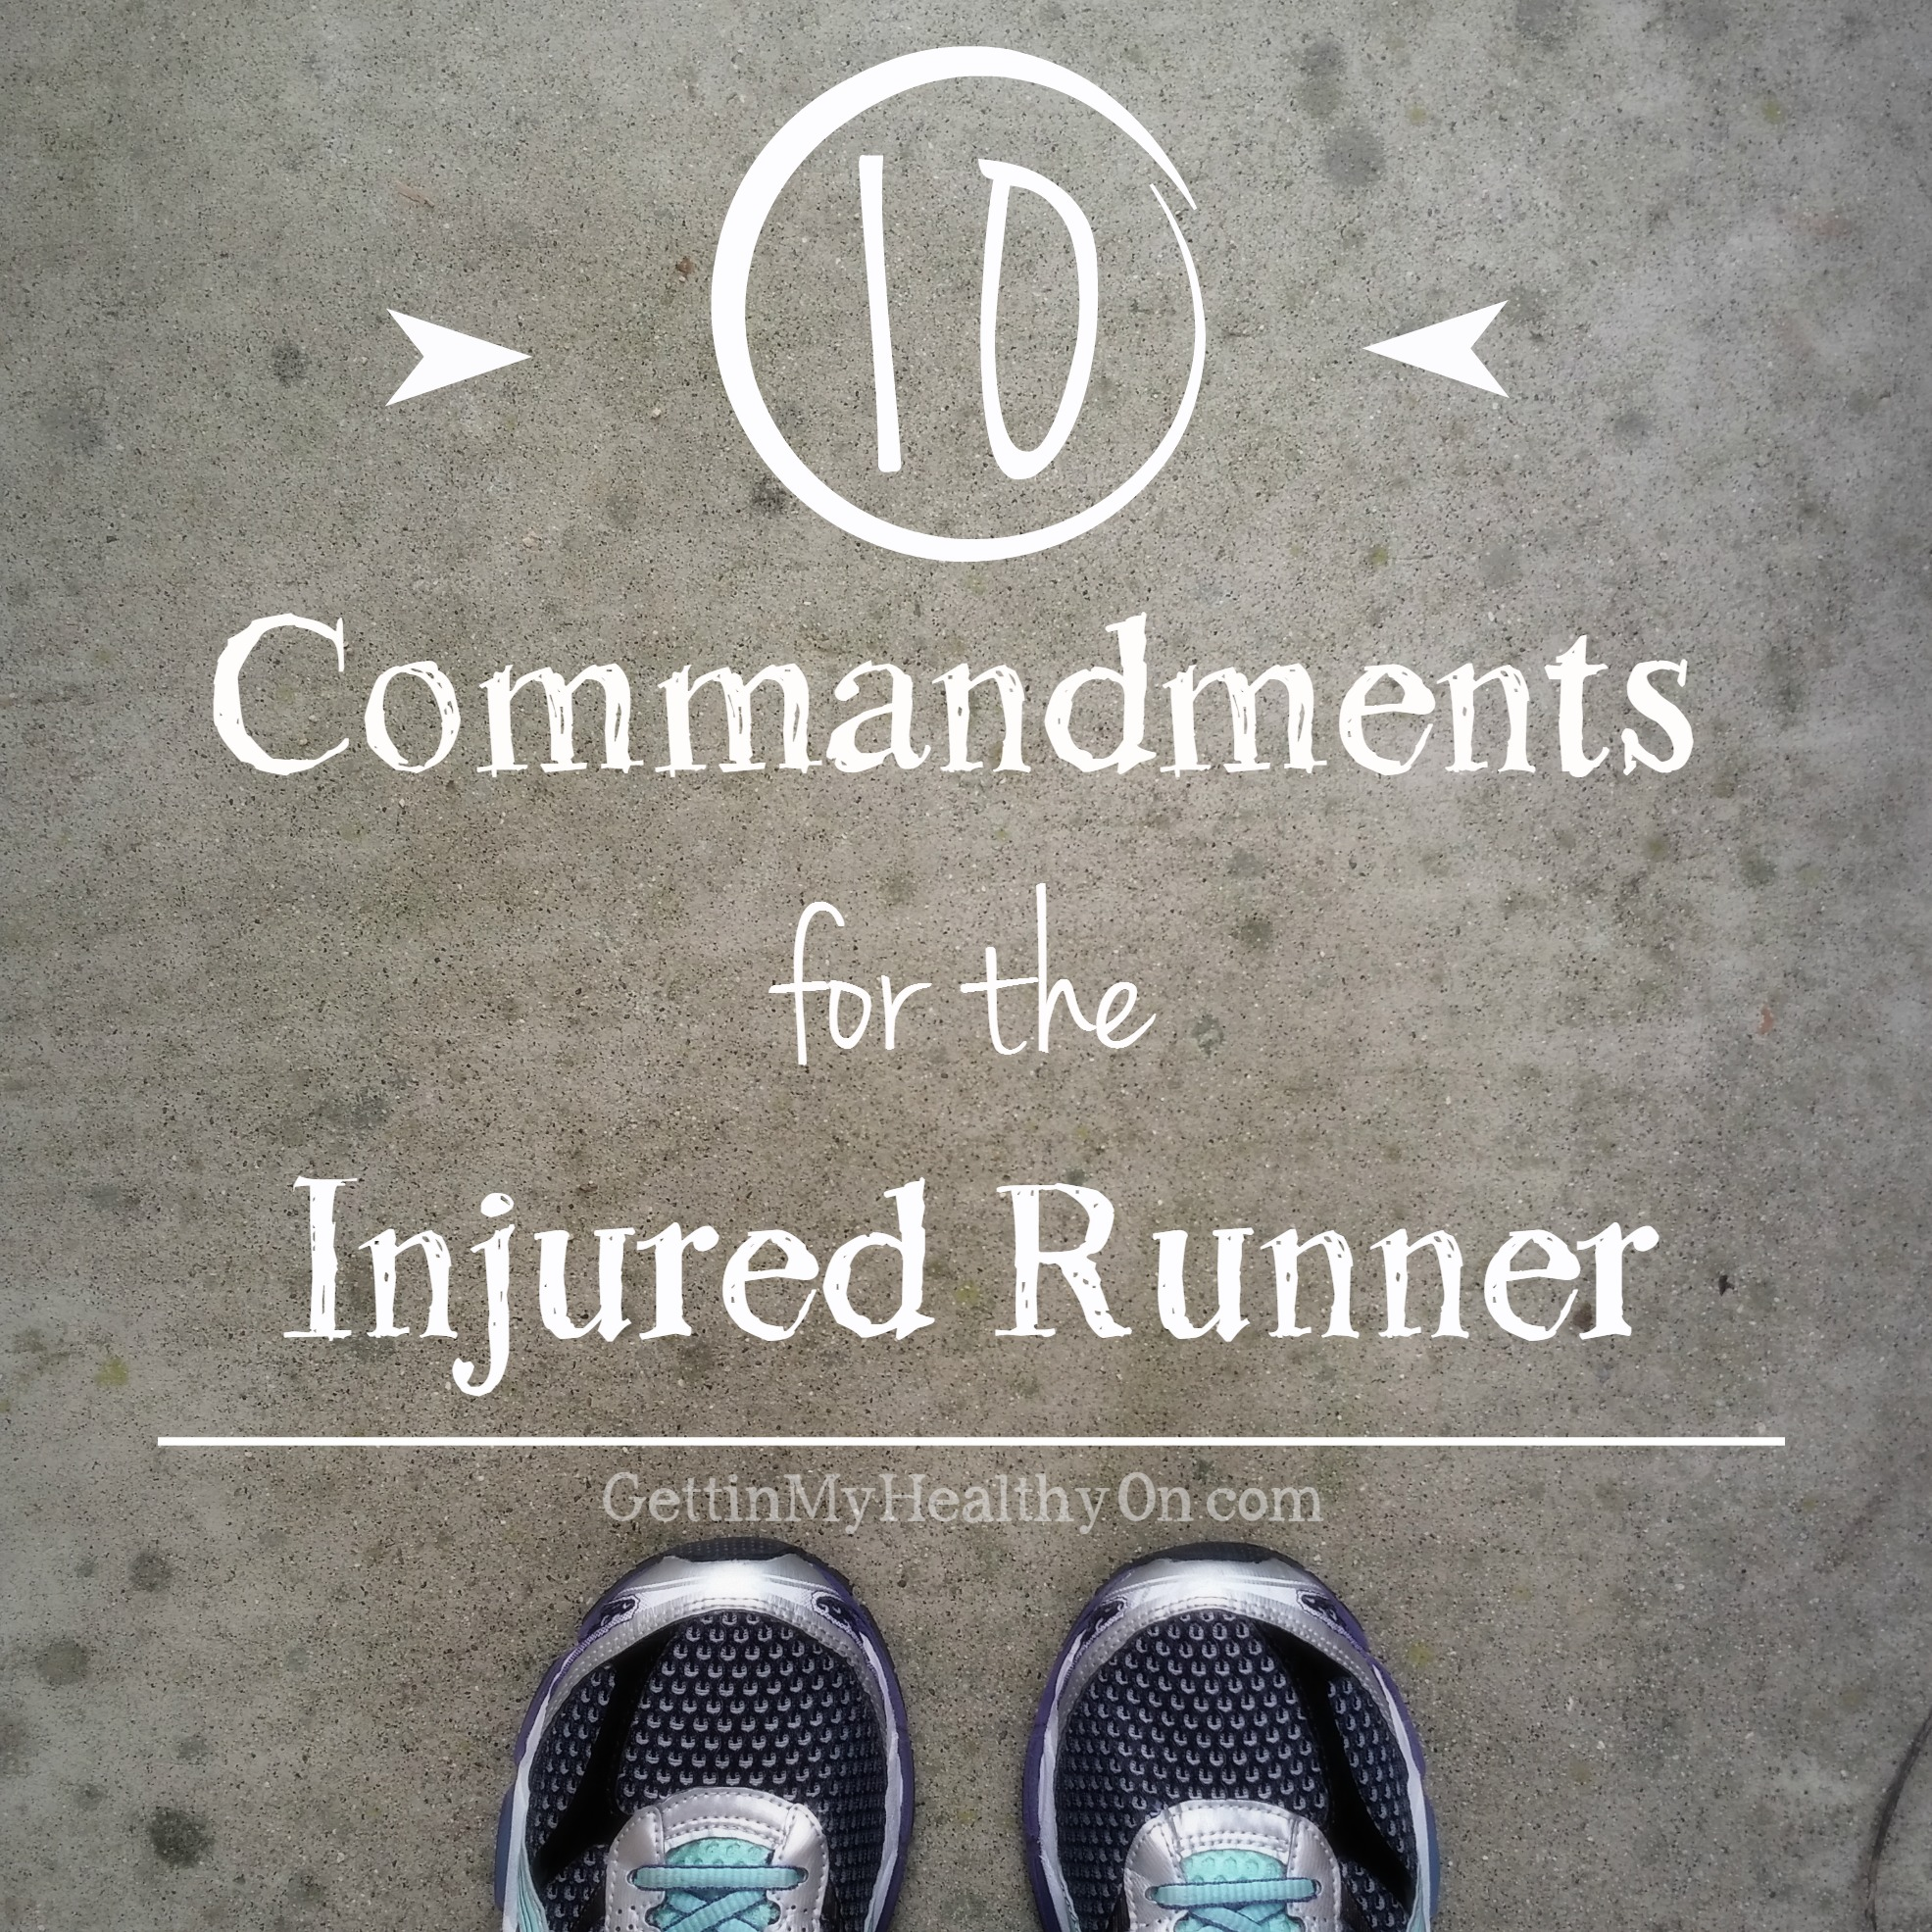 10 commandments of physical therapy - 10 Commandments Of Physical Therapy 30